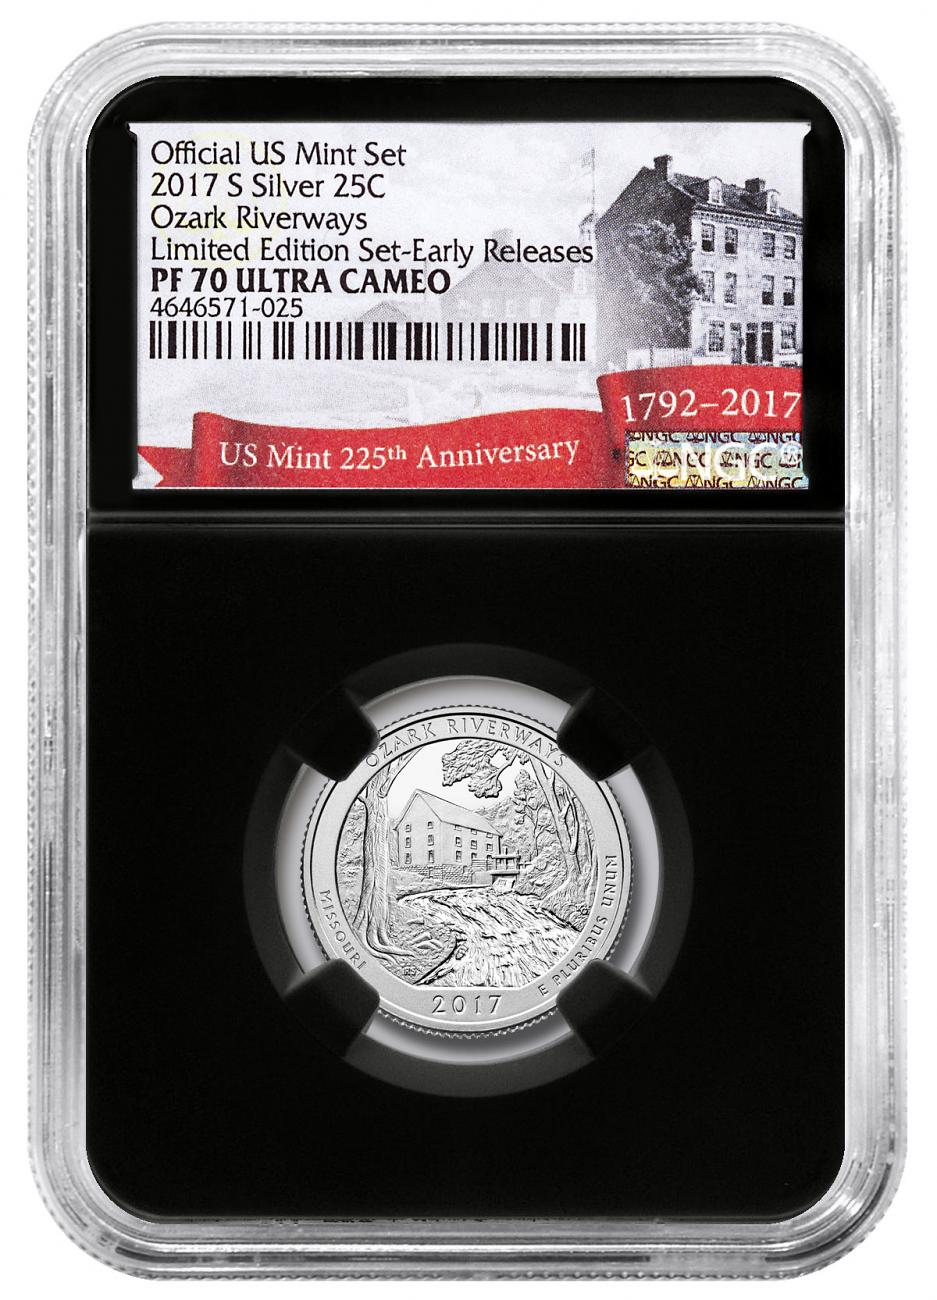 2017-S Silver Ozark National Scenic Riverways Proof America the Beautiful Quarter From Limited Edition Silver Proof Set NGC PF70 UC ER Black Core Holder Exclusive U.S. Mint 225th Anniversary Label